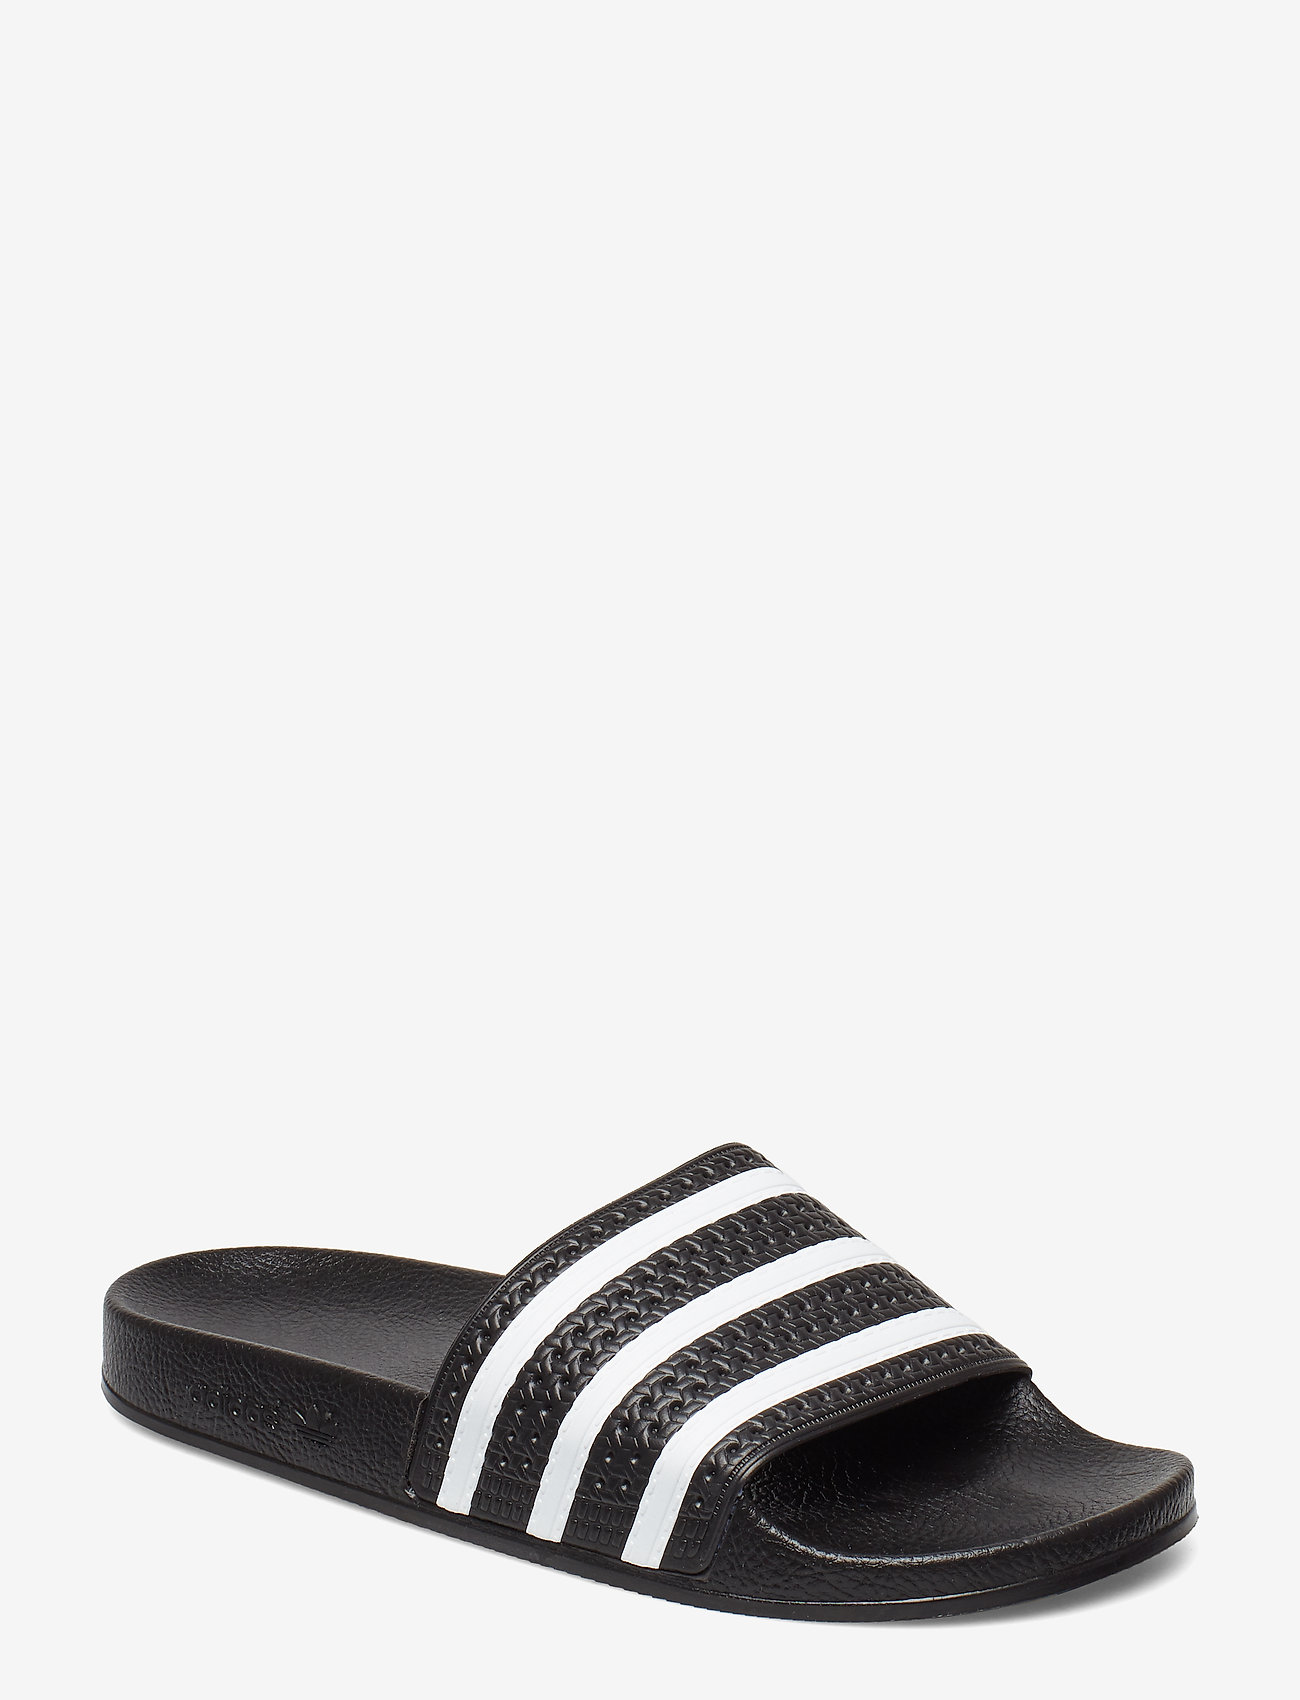 adidas Originals - ADILETTE - pool sliders - cblack/white/cblack - 0